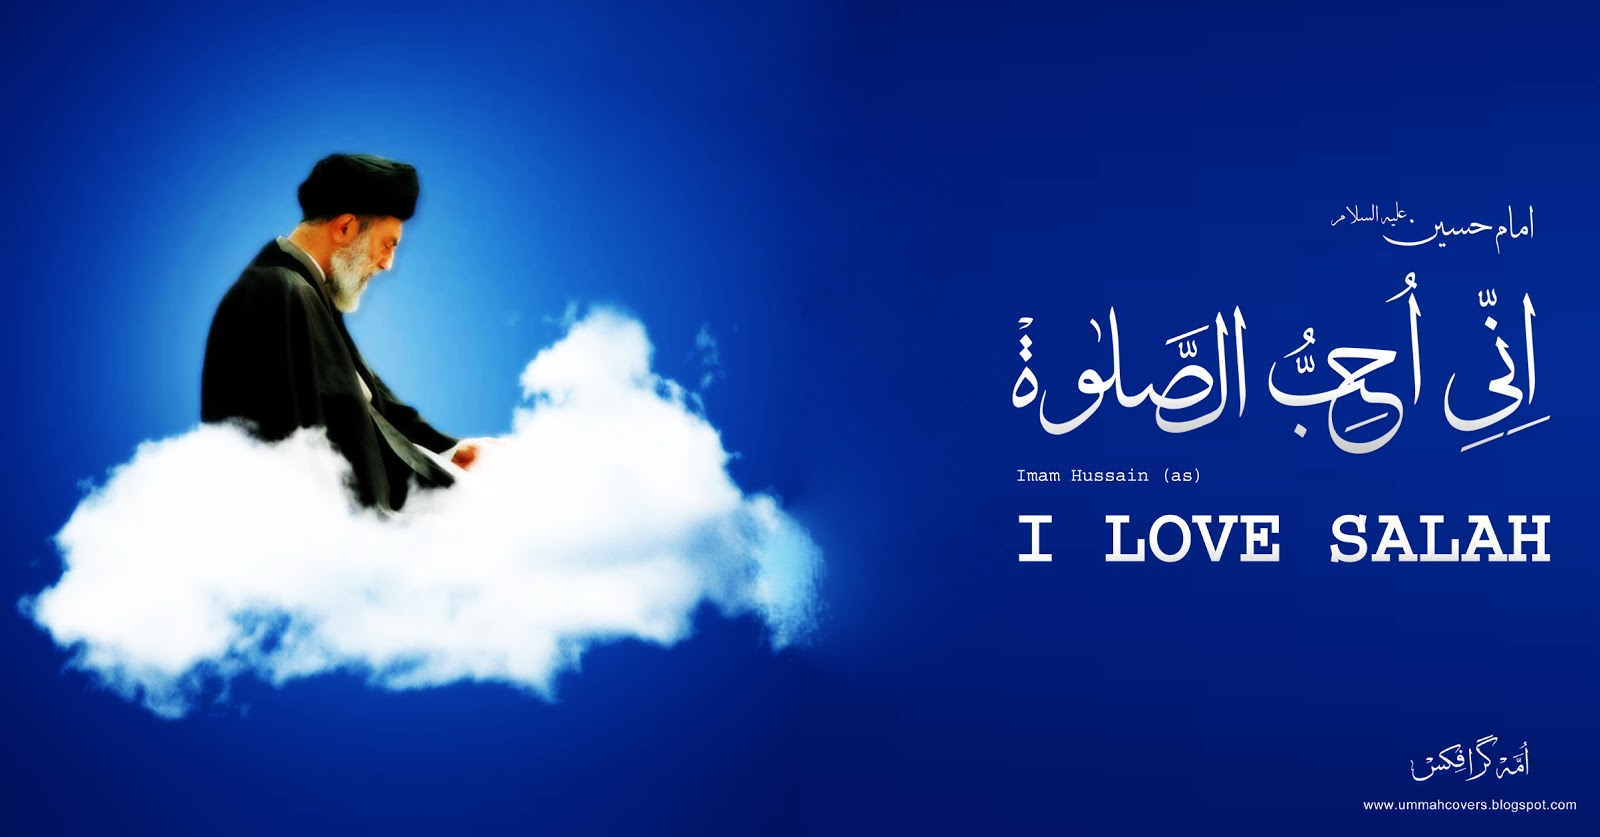 Latest Love Wallpaper For Fb : UMMAH Graphics: I Love Salah ( Imam Hussain a.s ) Wallpaper + FB cover